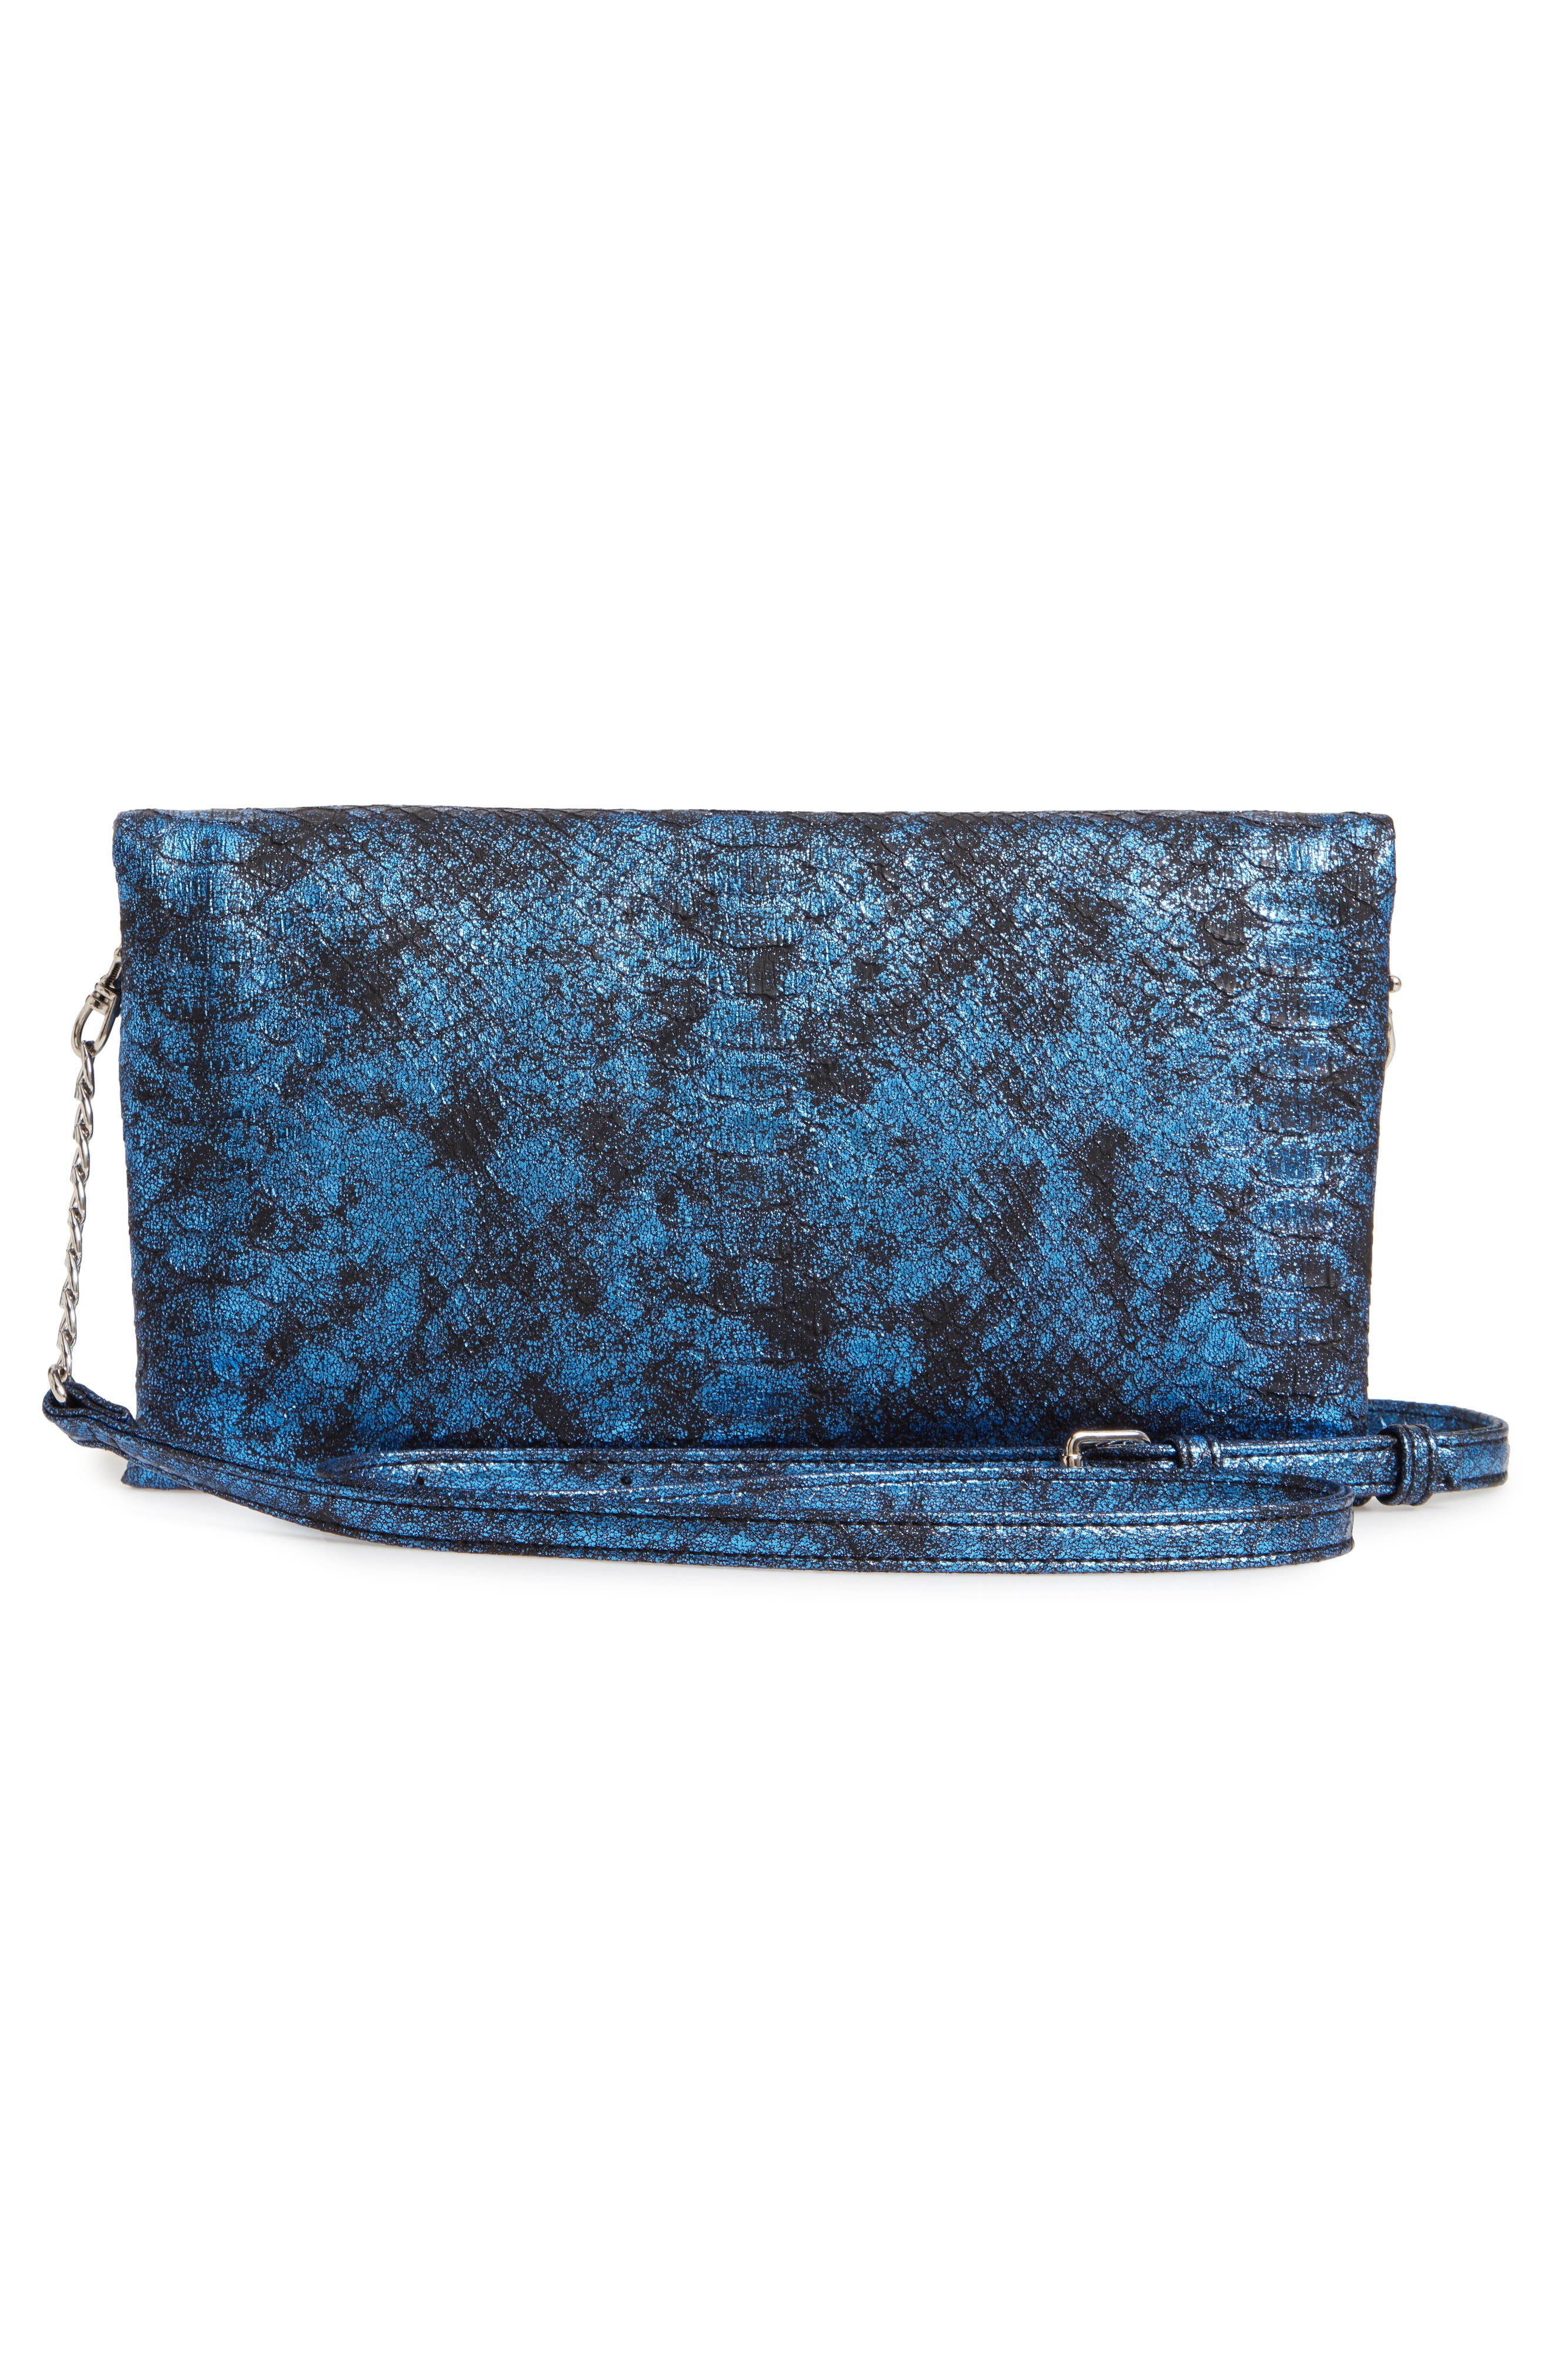 Snake Embossed Faux Leather Clutch,                             Alternate thumbnail 3, color,                             NAVY